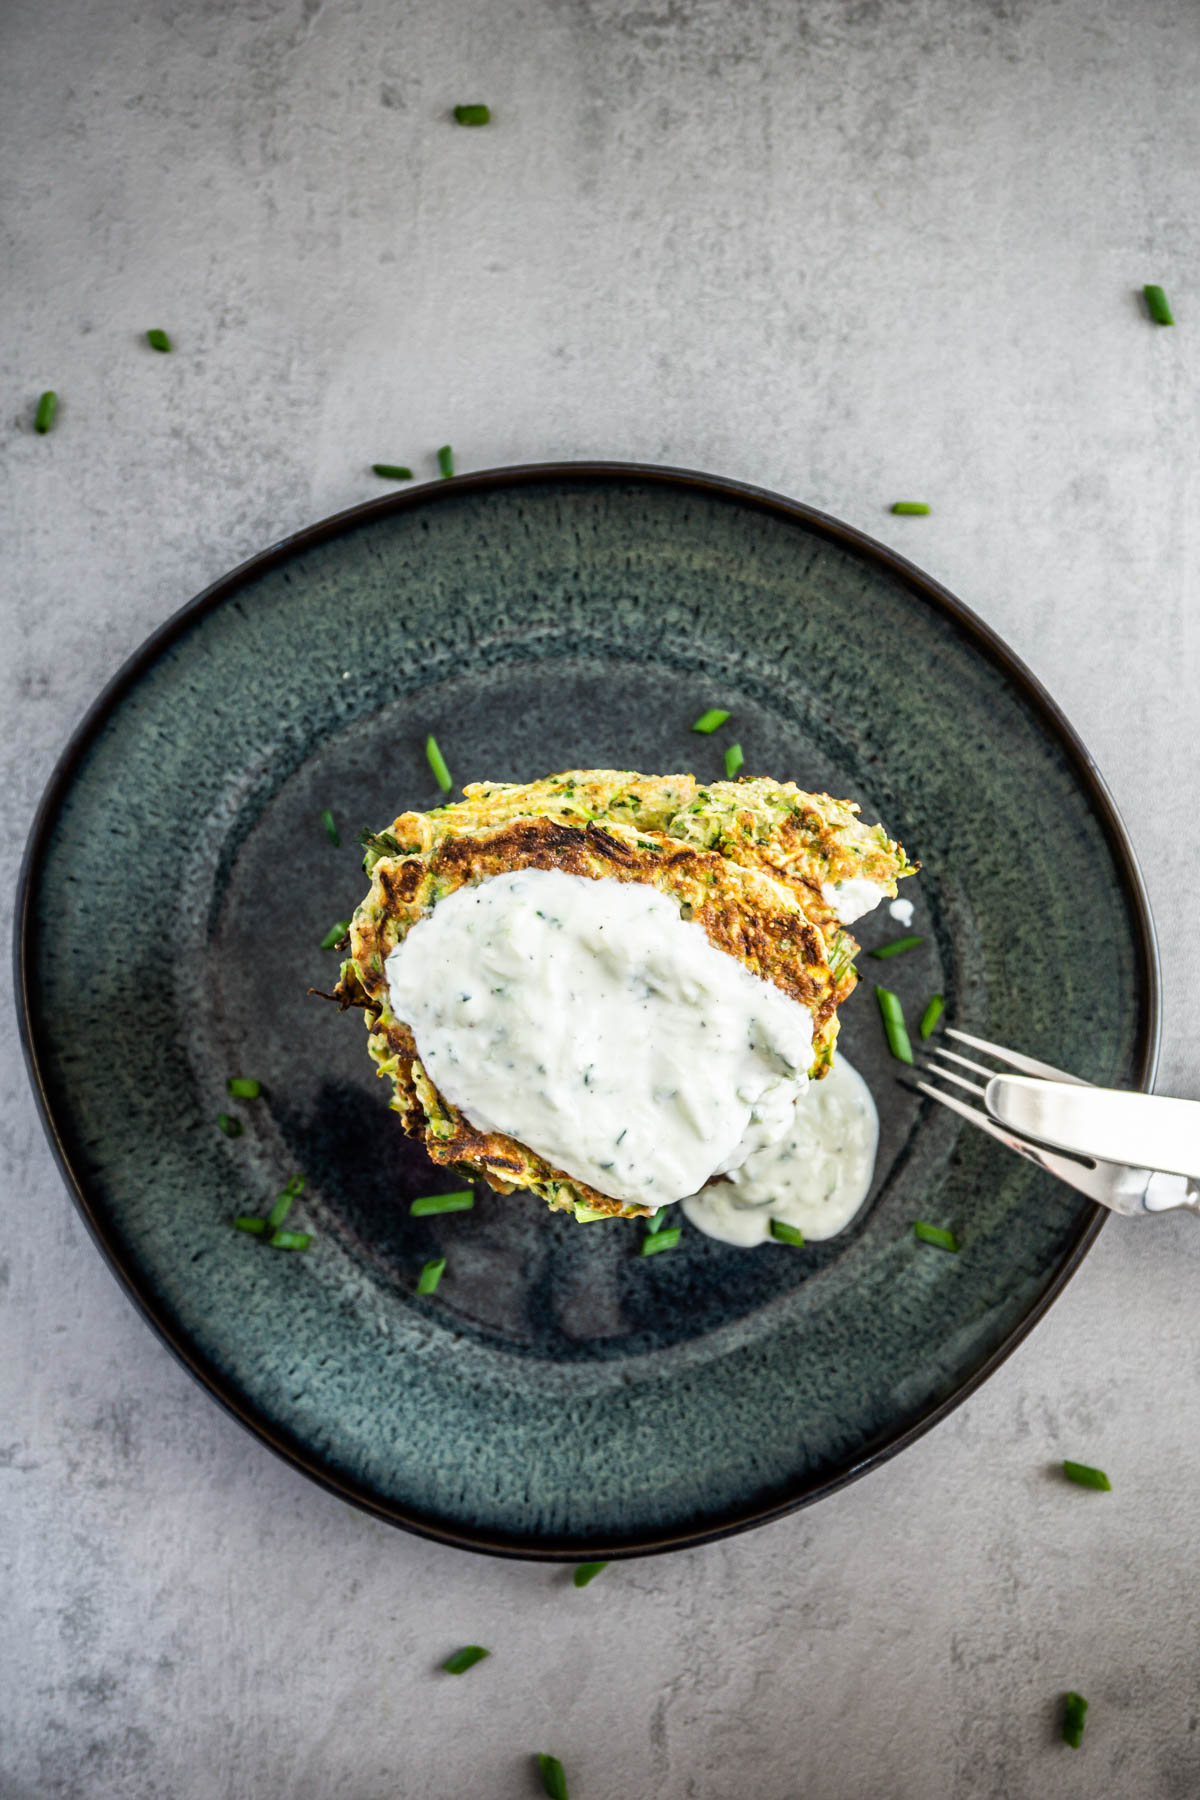 Courgette Fritters on a grey background with yogurt on top